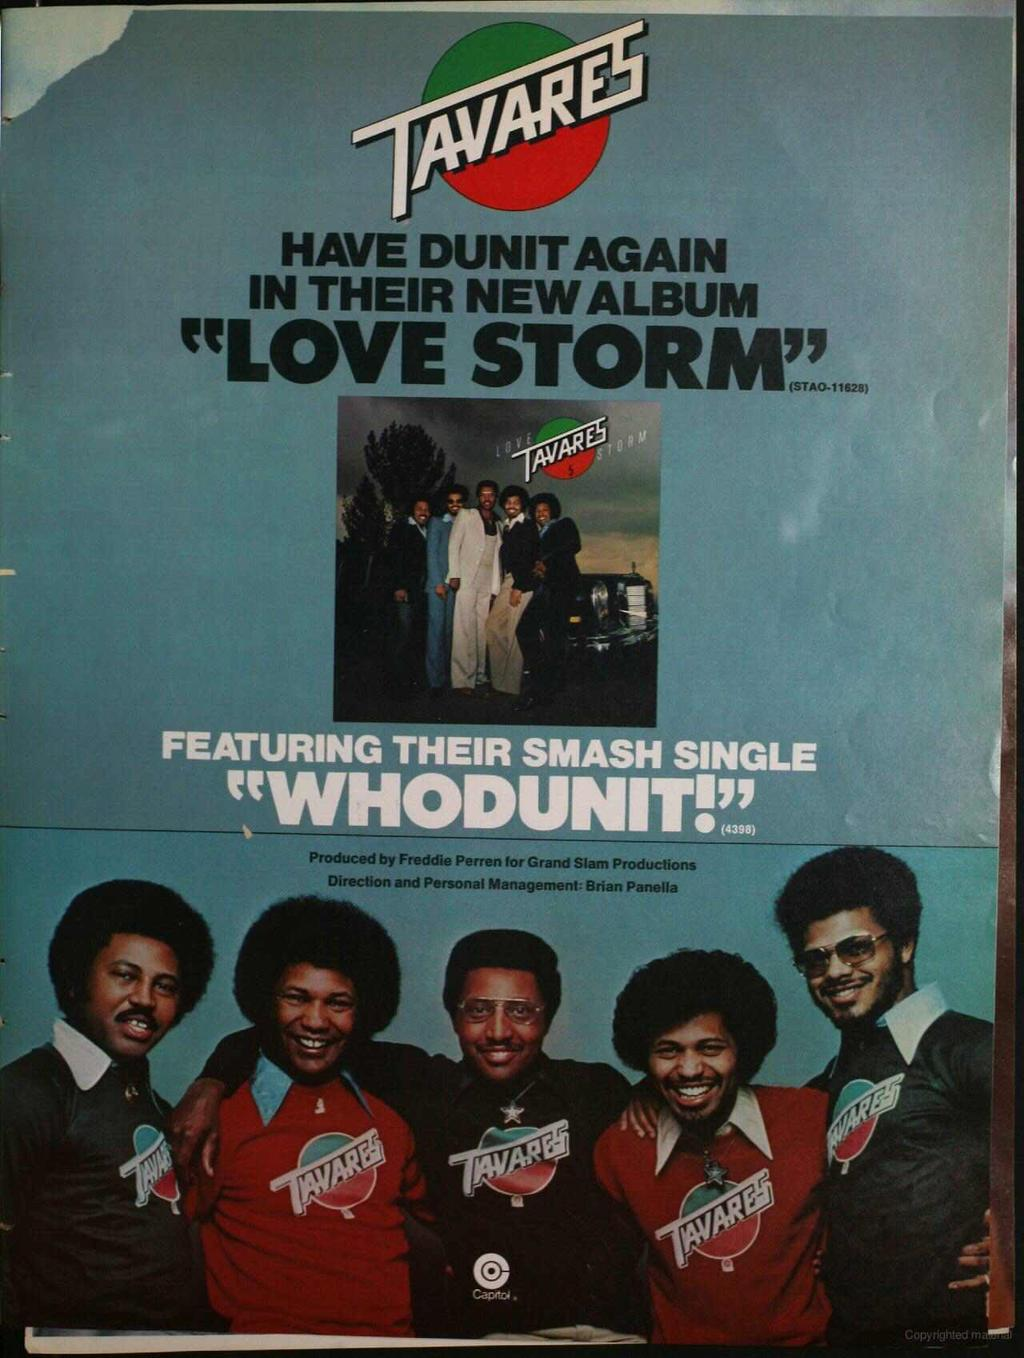 "HAVE DUNT AGAN N THER NEW ALBUM ""LOVE STORM""!B FEATURNG THER SMASH SNGLE 'WHODUNT!"